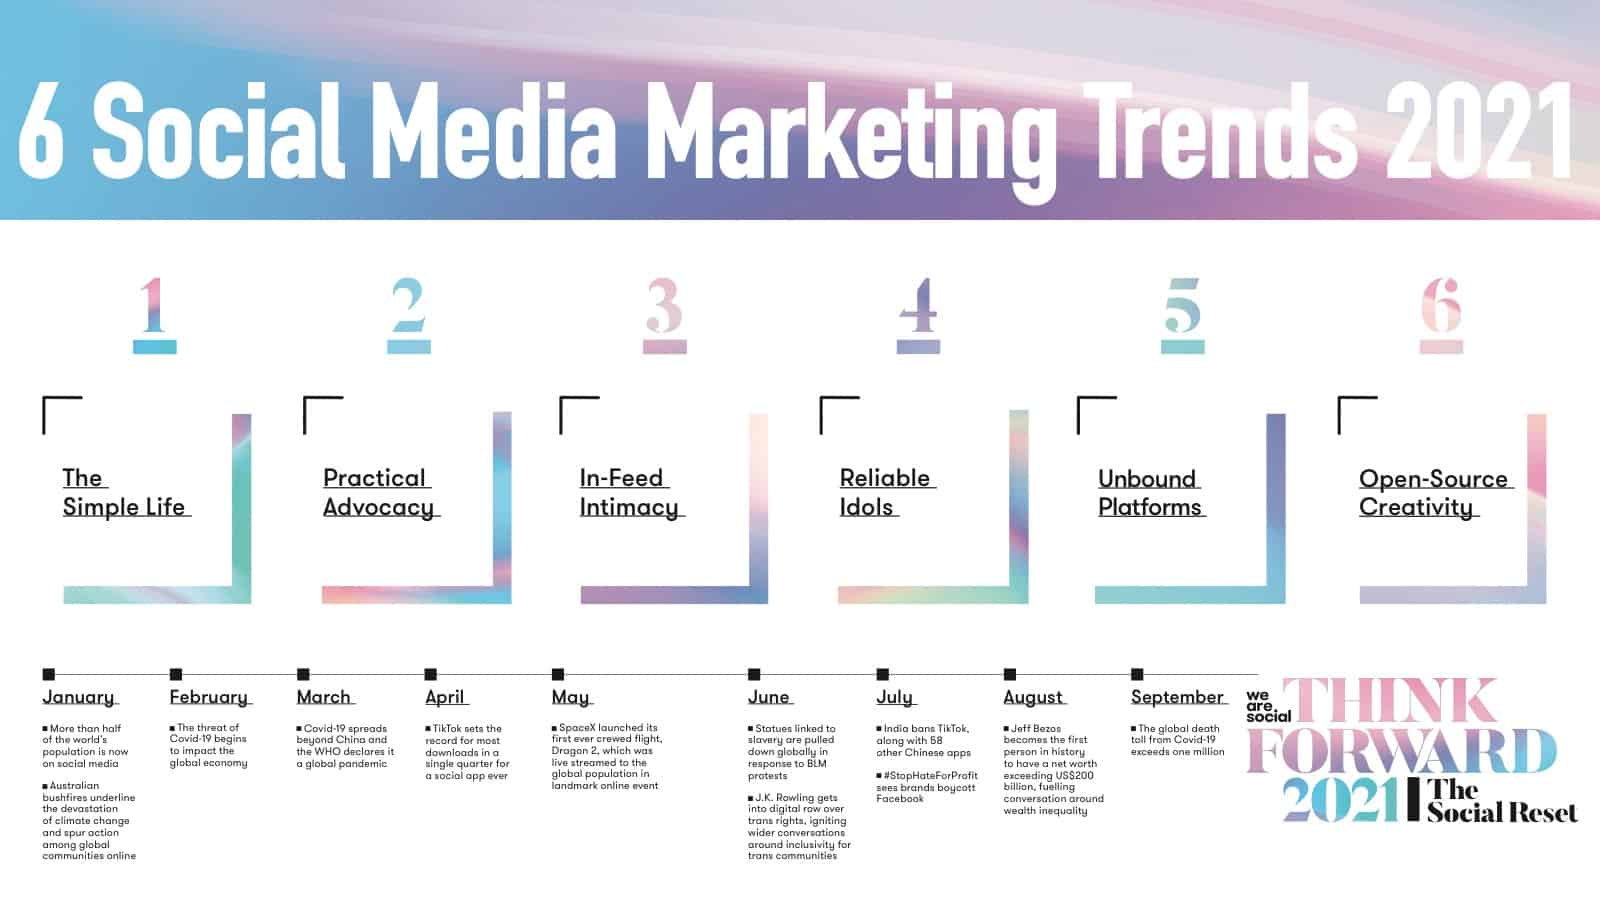 6 Social Media Marketing Trends 2021 – The Social Reset ตอนที่ 1